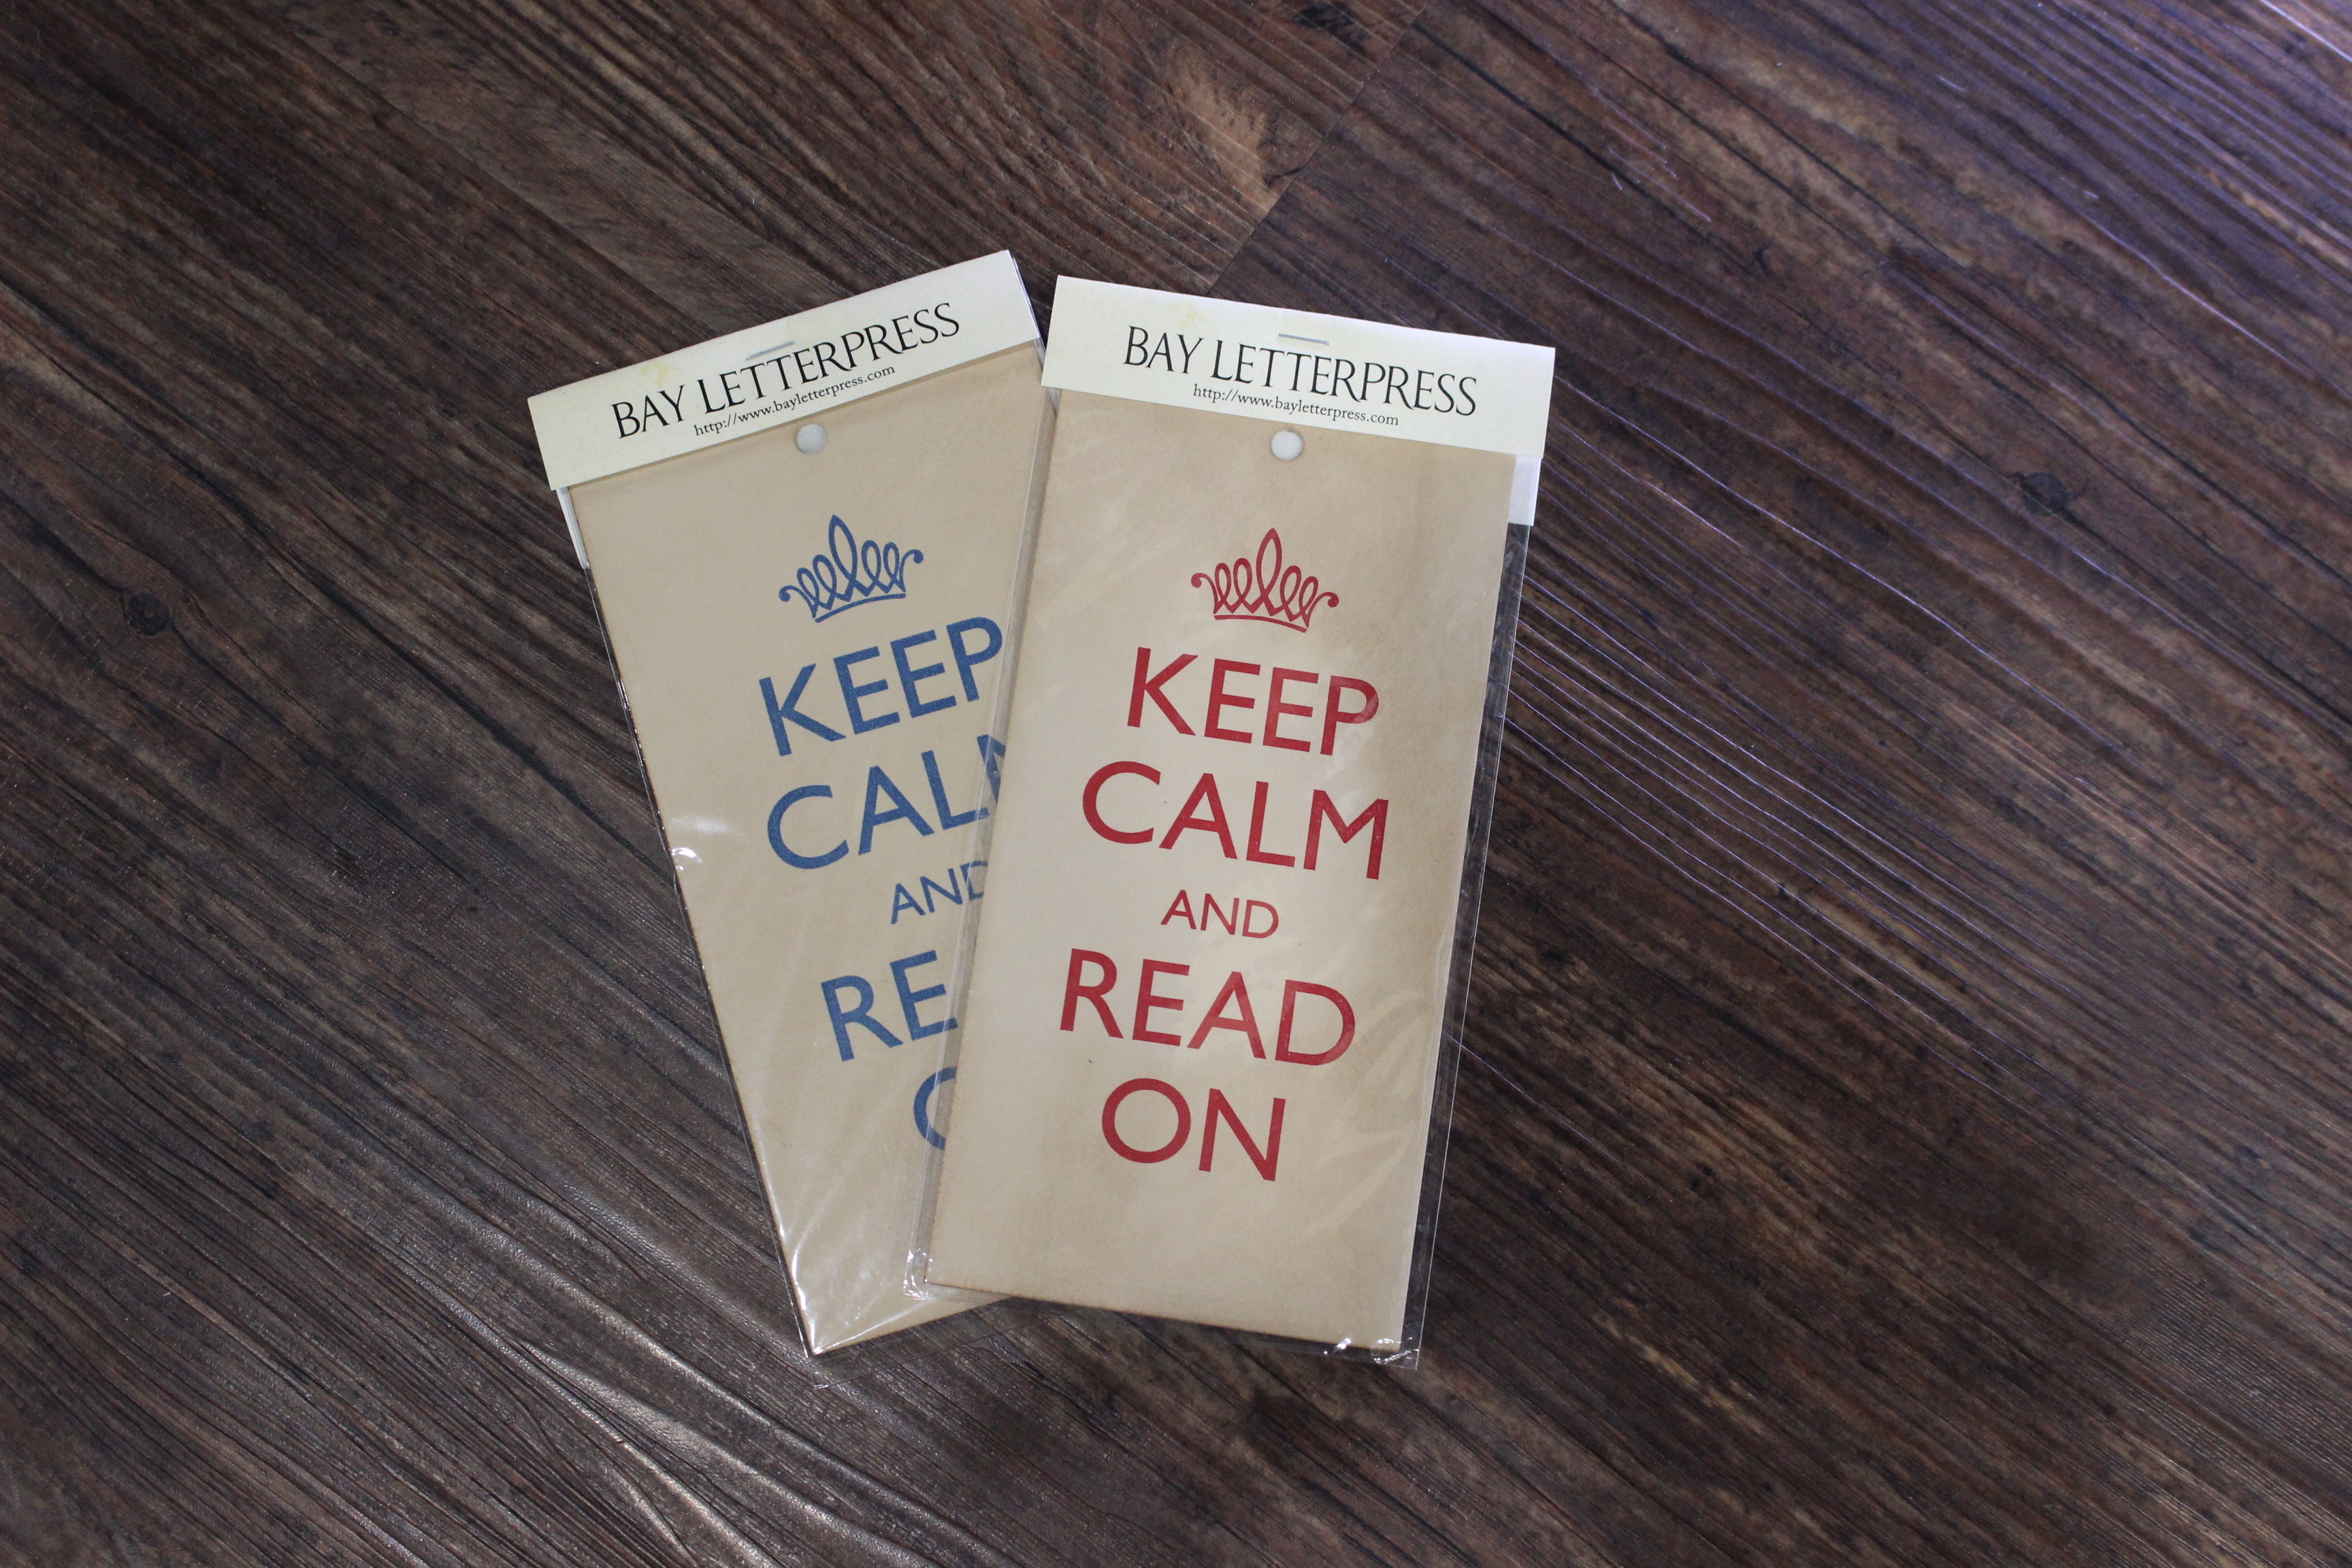 KEEP CALM AND READ ON(ANTIQUE.ver)のミニポスター